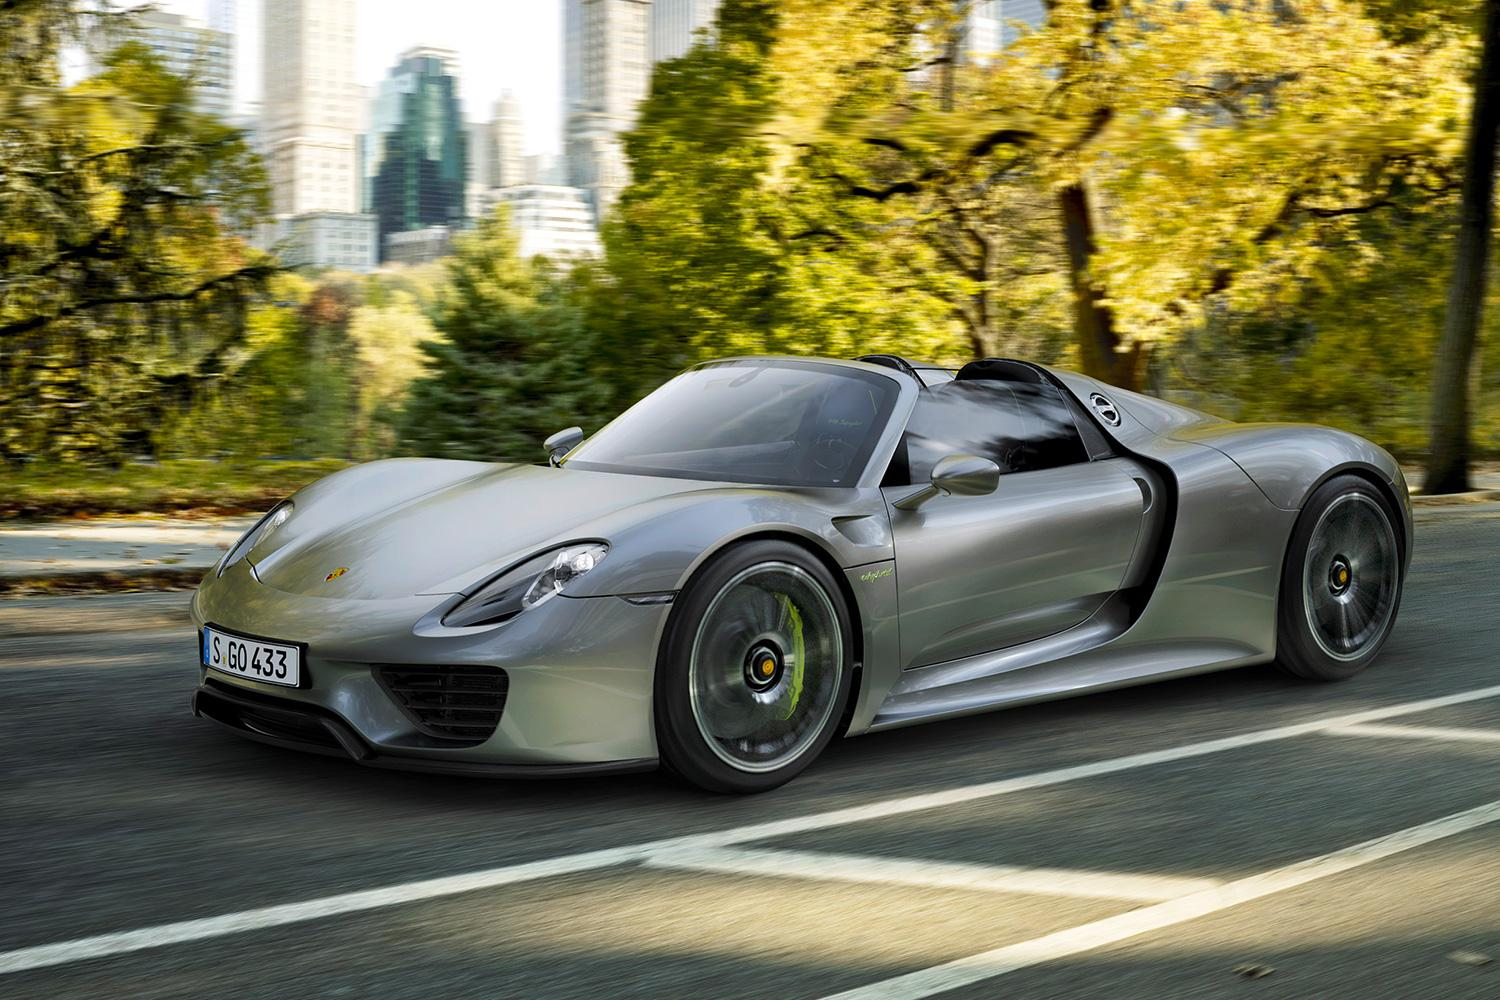 porsche 39 s 918 spyder goes 0 60 mph in 2 5 seconds. Black Bedroom Furniture Sets. Home Design Ideas